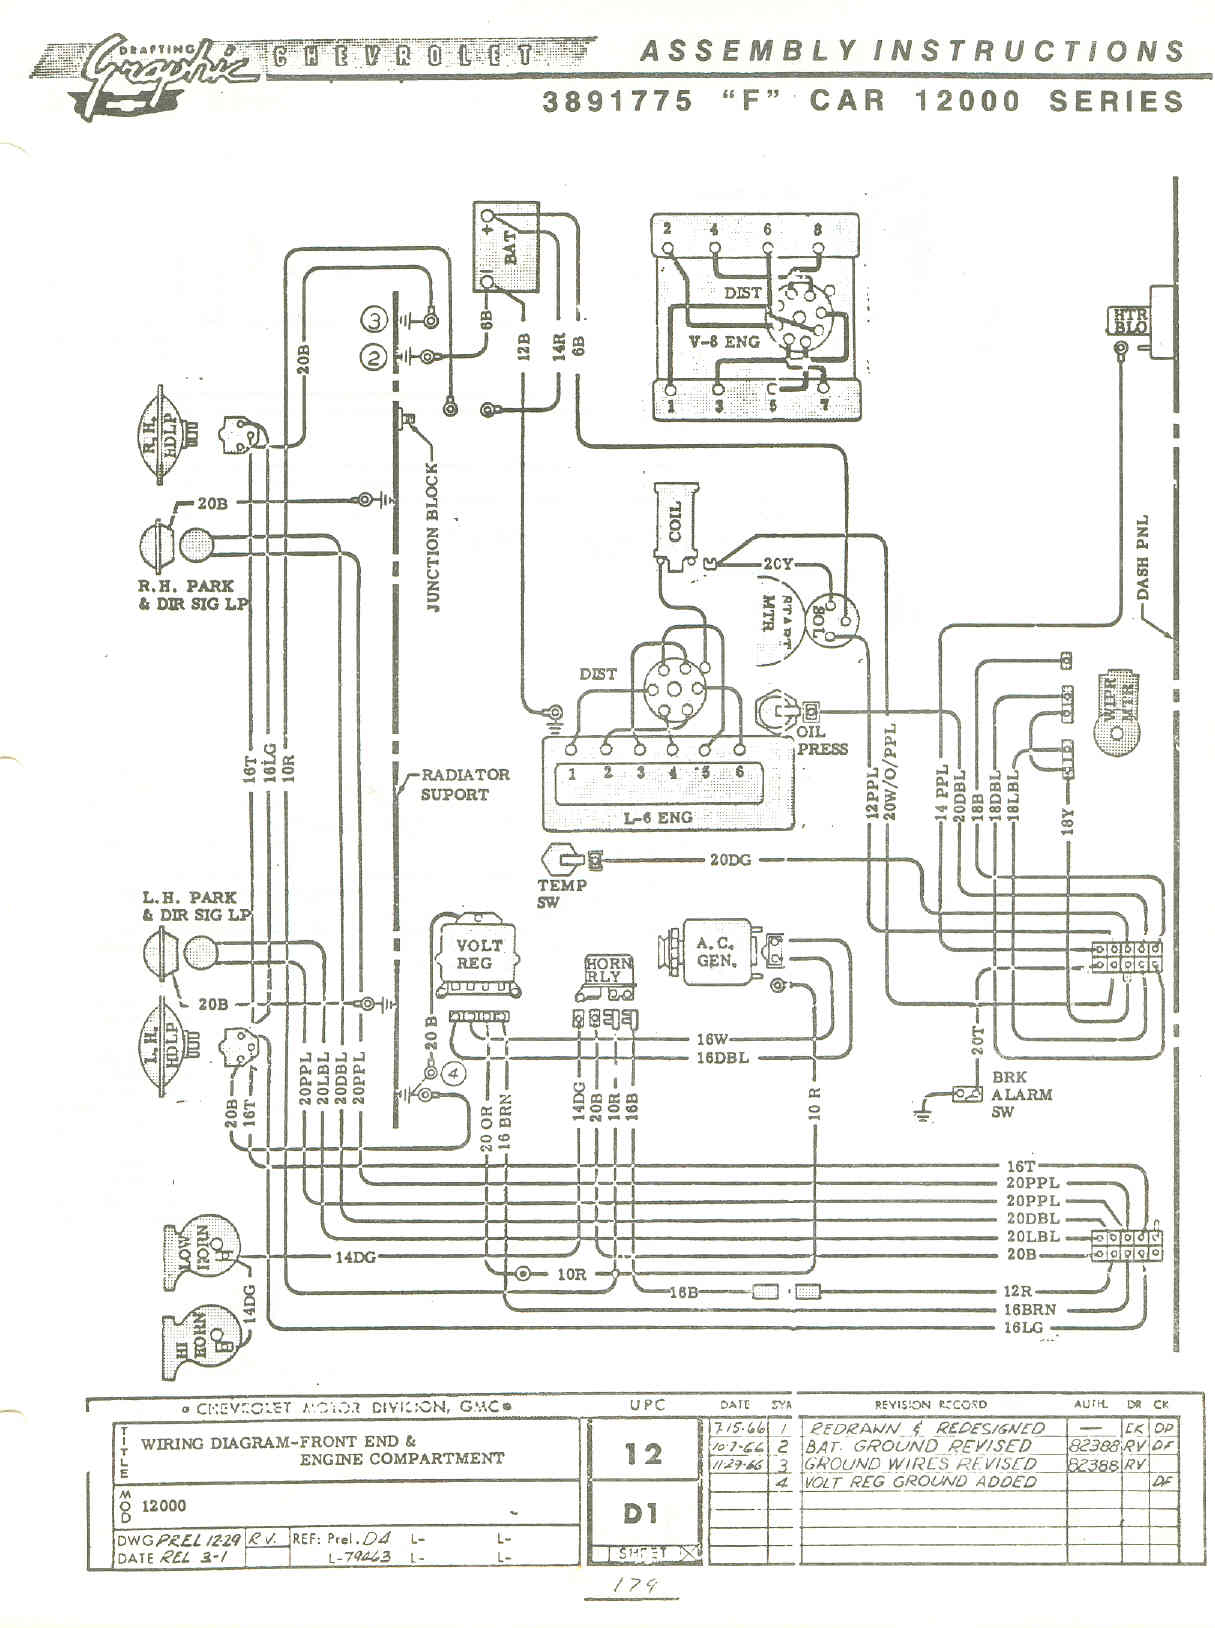 1971 camaro engine wiring diagram 1971 image 2011 camaro wiring diagram 2011 wiring diagrams on 1971 camaro engine wiring diagram